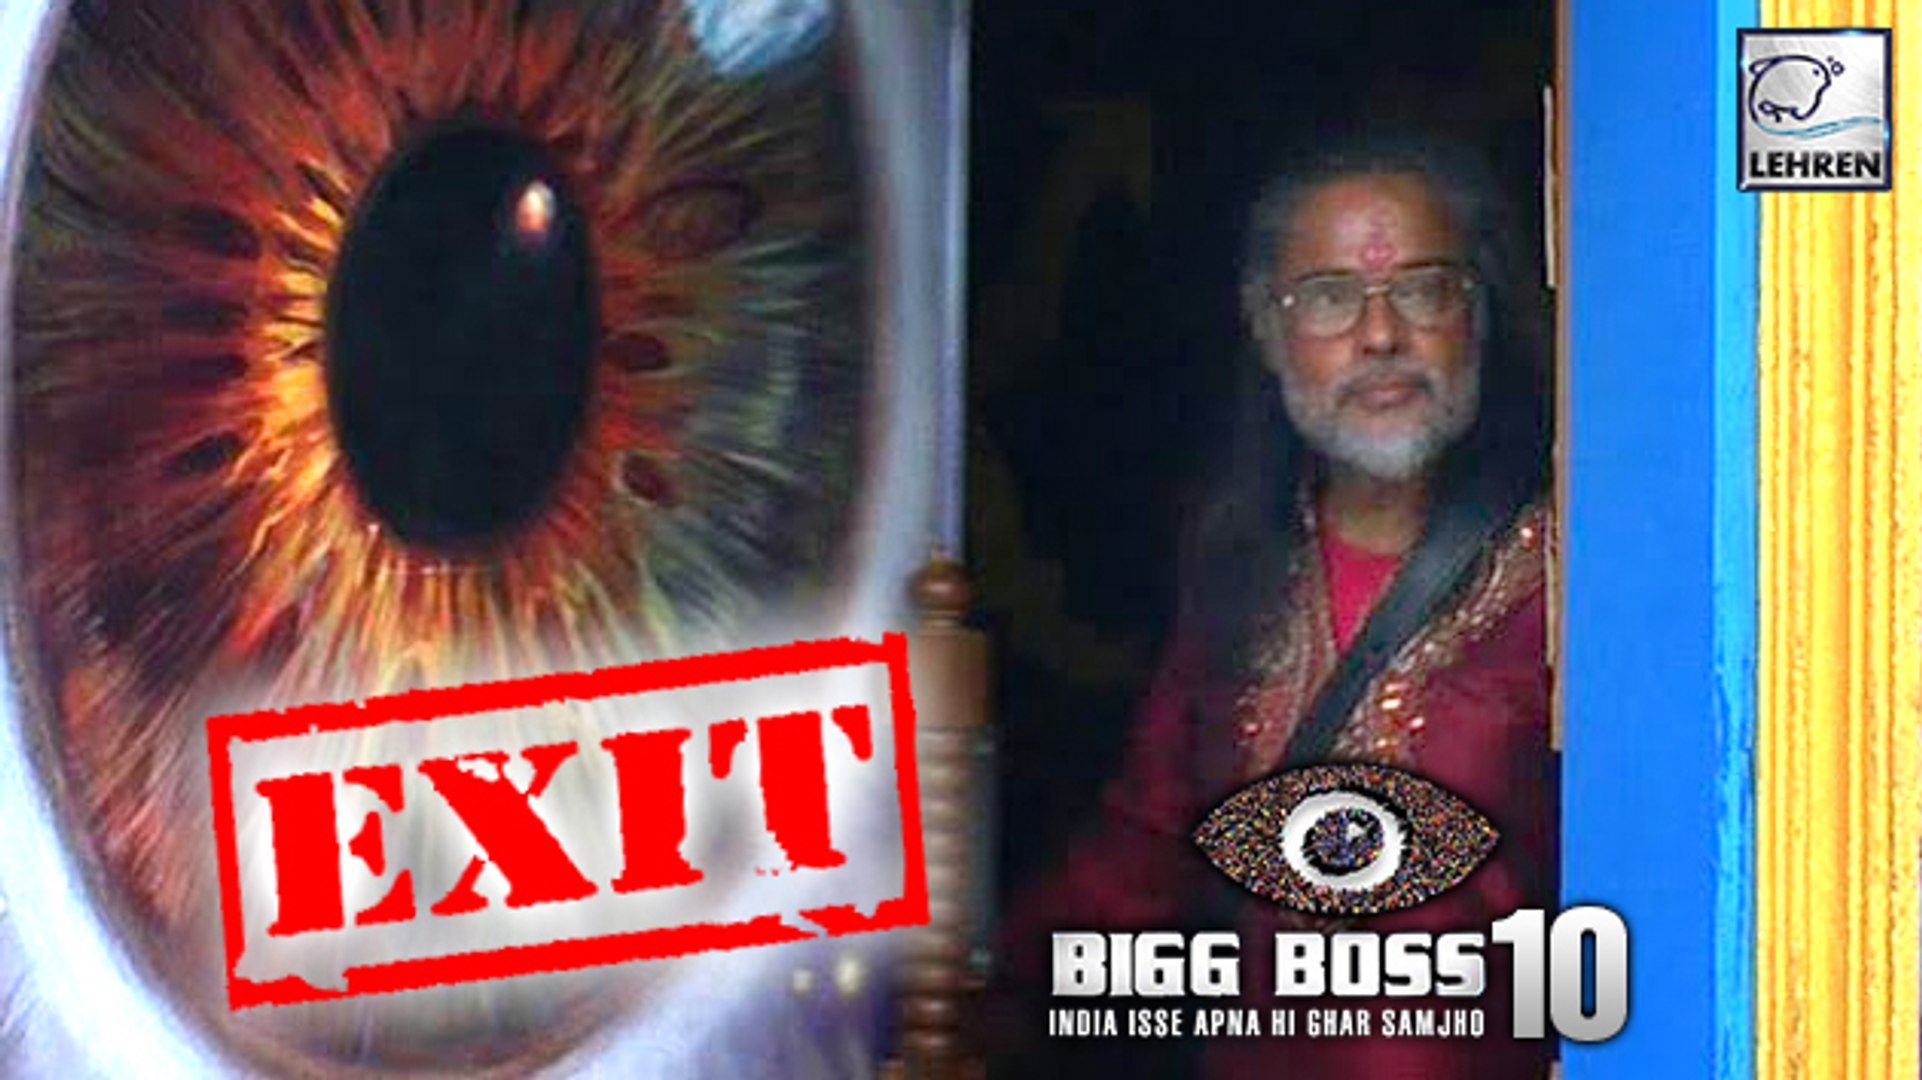 Bigg Boss 10: Om Swami Makes An Emergency EXIT